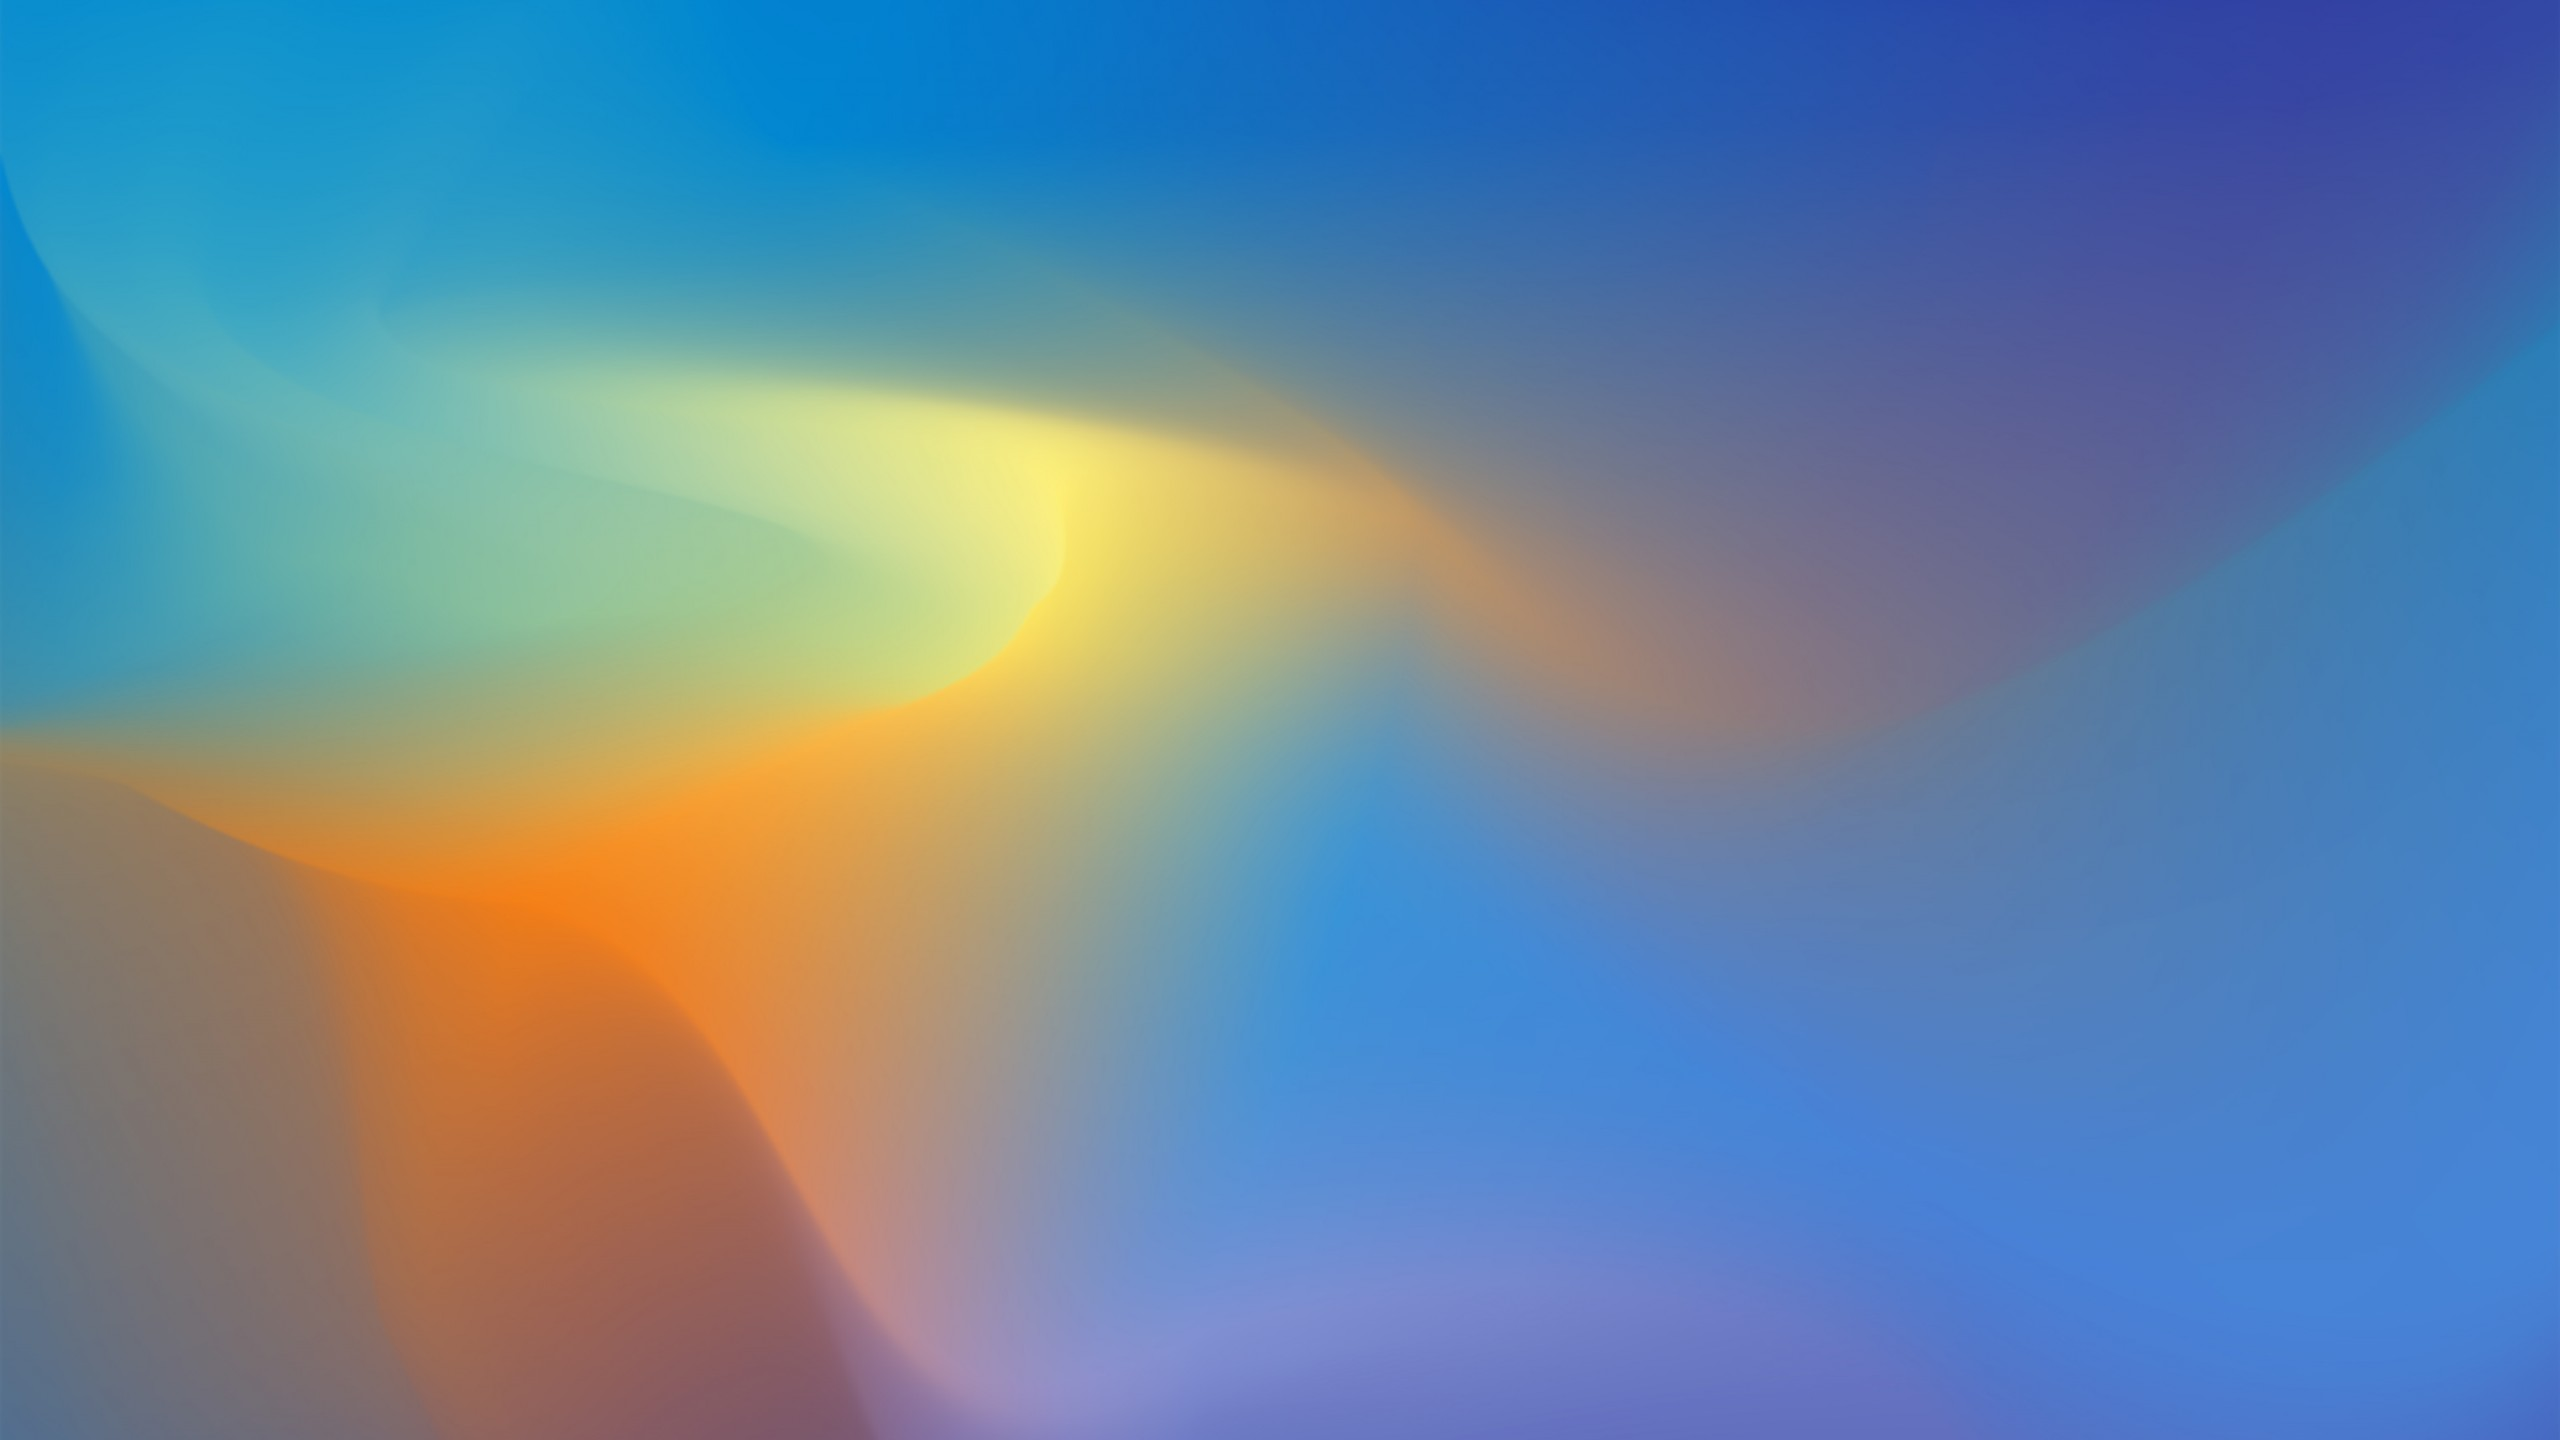 wallpaper google pixel 3 android 9 pie abstract 4k os 20689